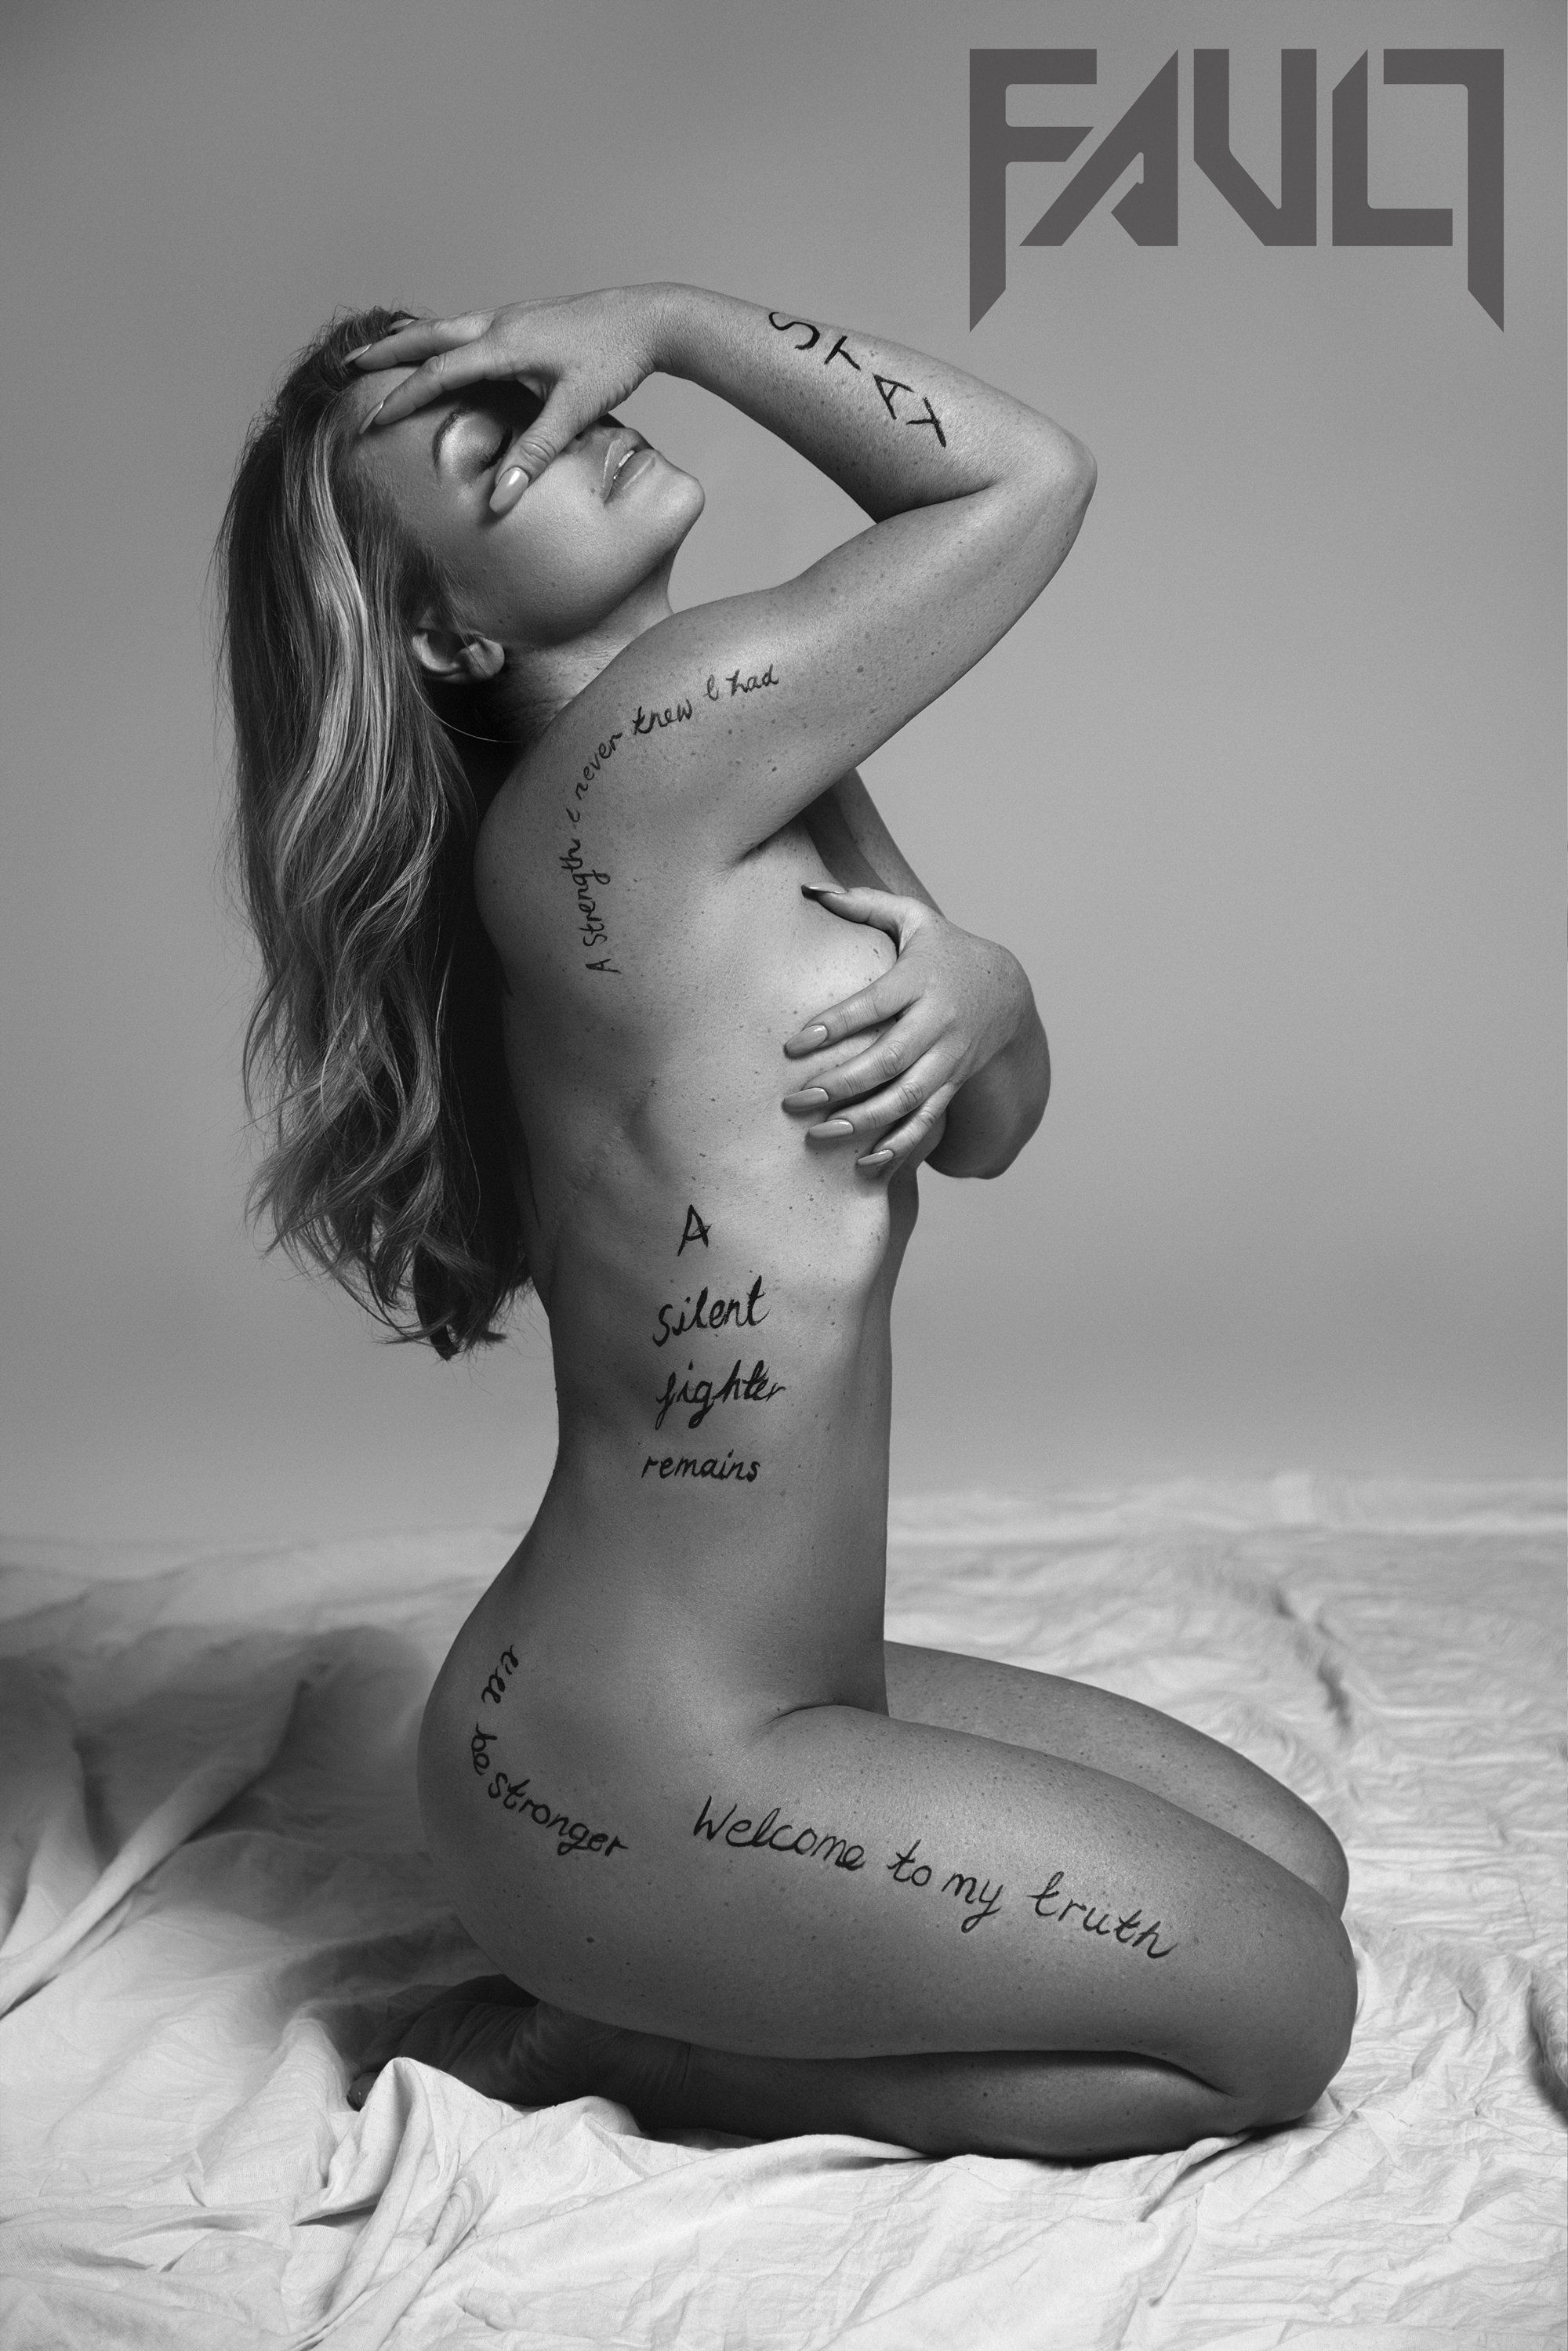 Anastacia Proudly Reveals Breast Cancer Scars In Empowering Nude